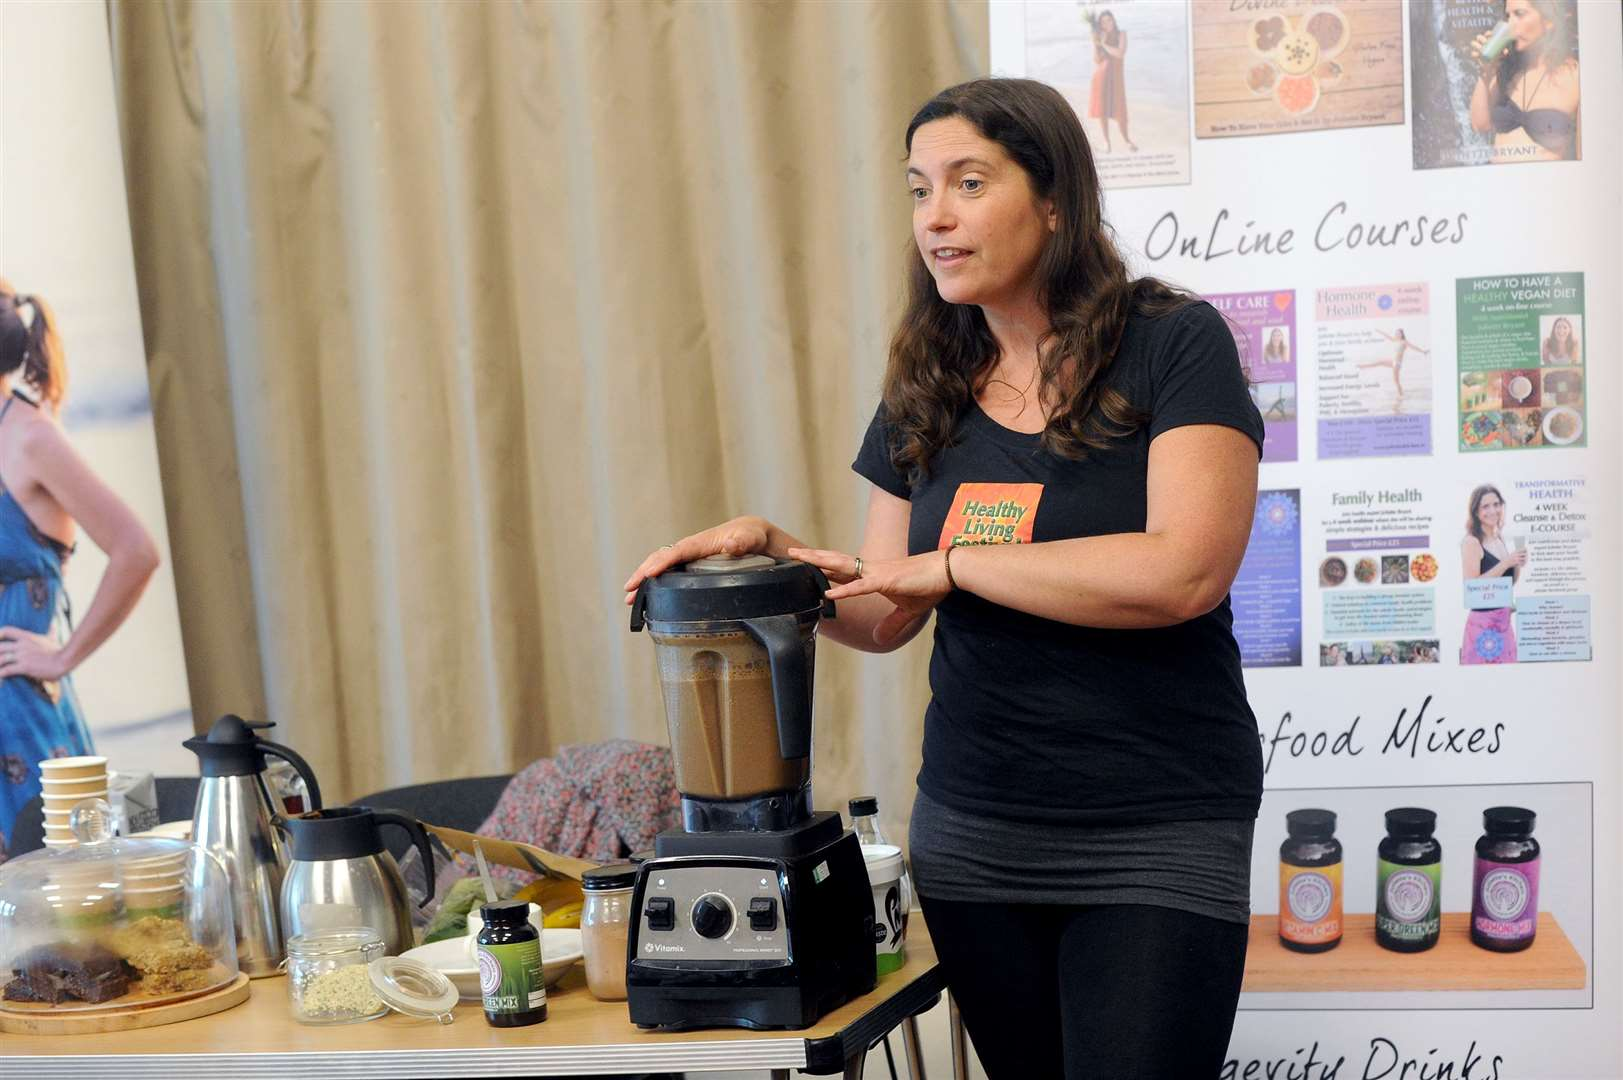 Healthy Living Festival in Kedington. Juliette Bryant showing quick and easy delicious healthy recipes. Picture by Mecha Morton.